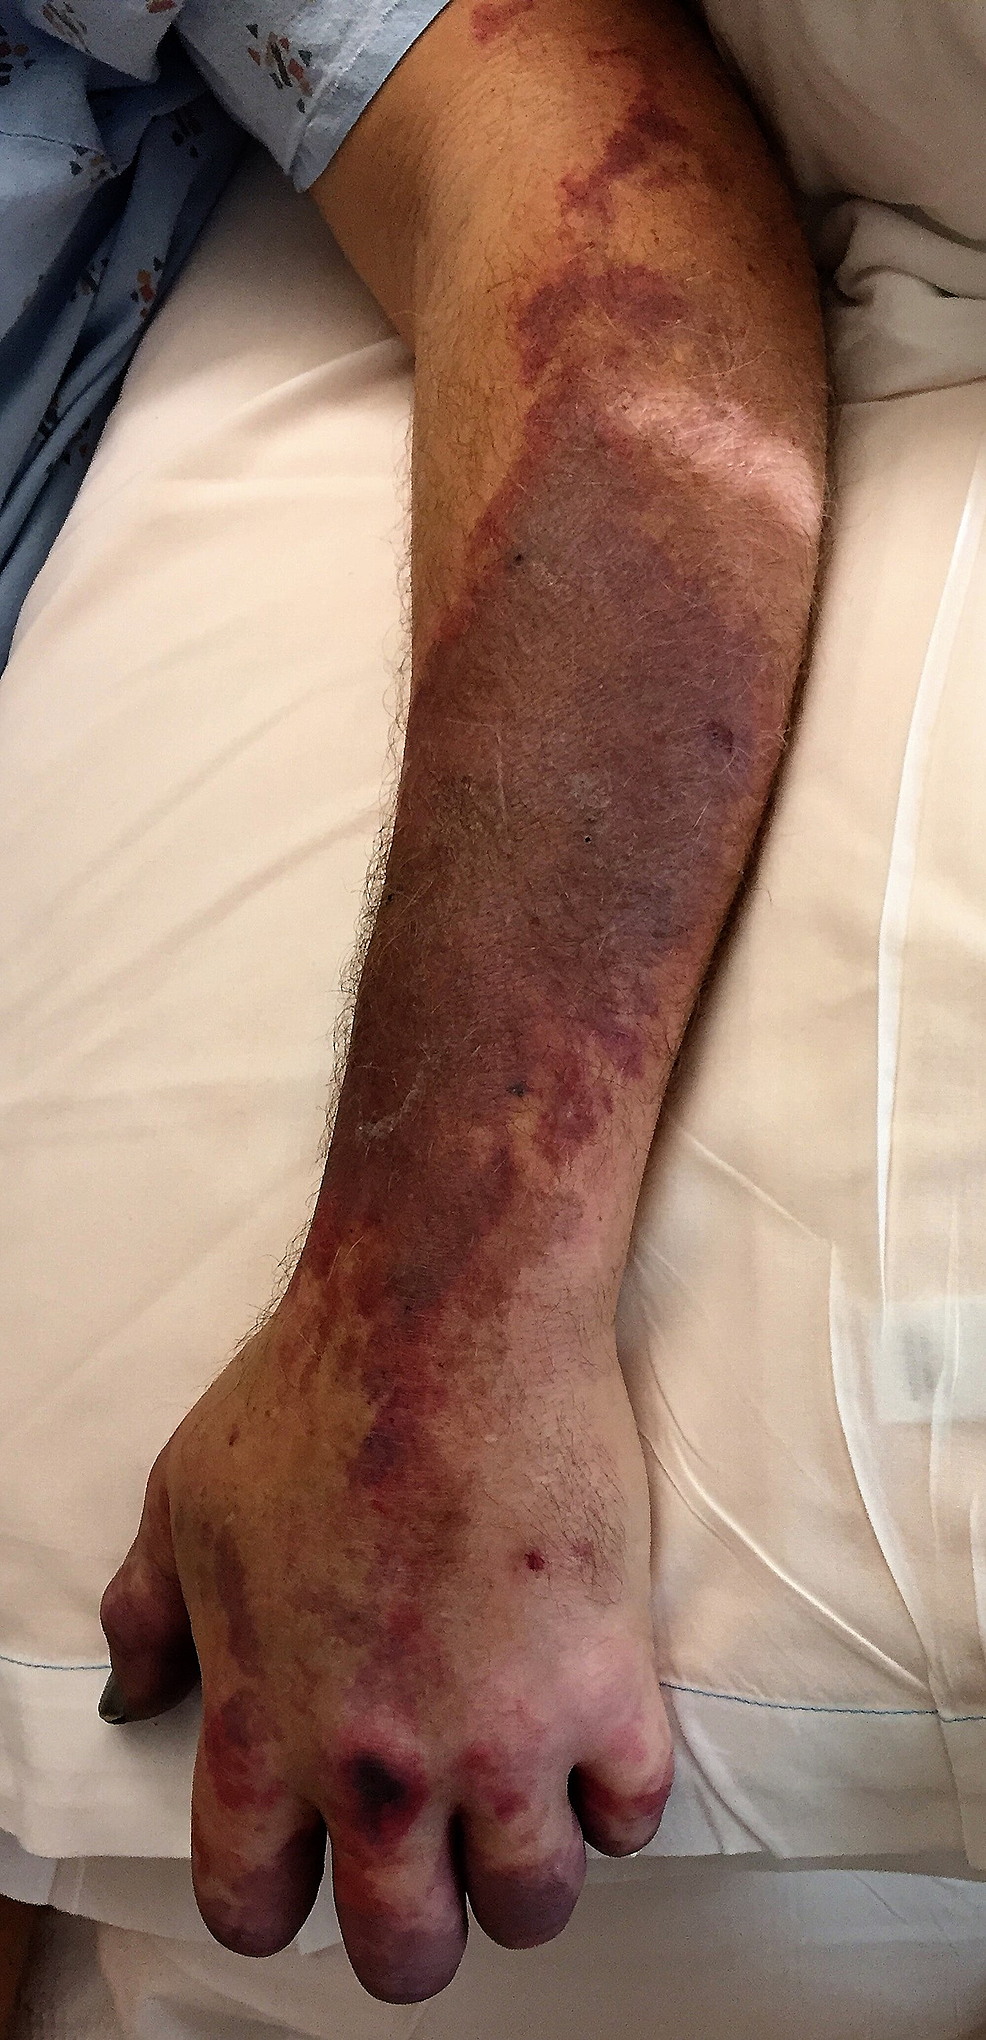 Rapidly-progressive-ischemia-extending-over-the-left-forearm